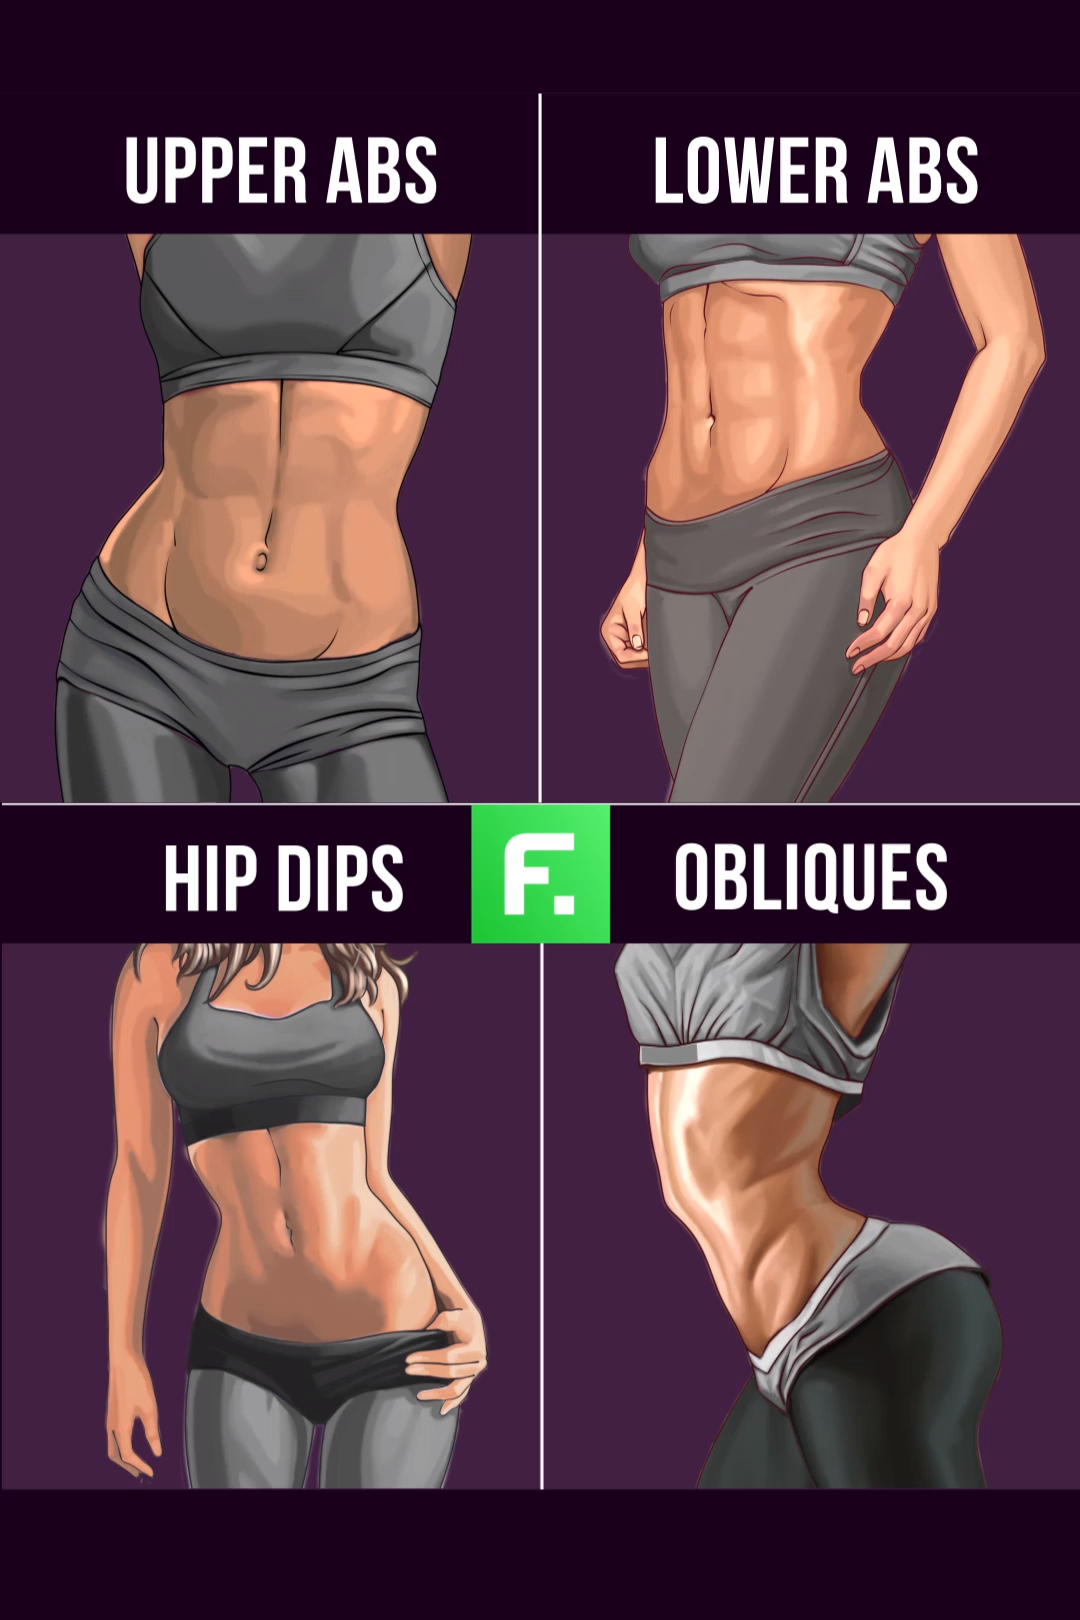 FitCoach: Weight Loss Workouts #upperabworkouts